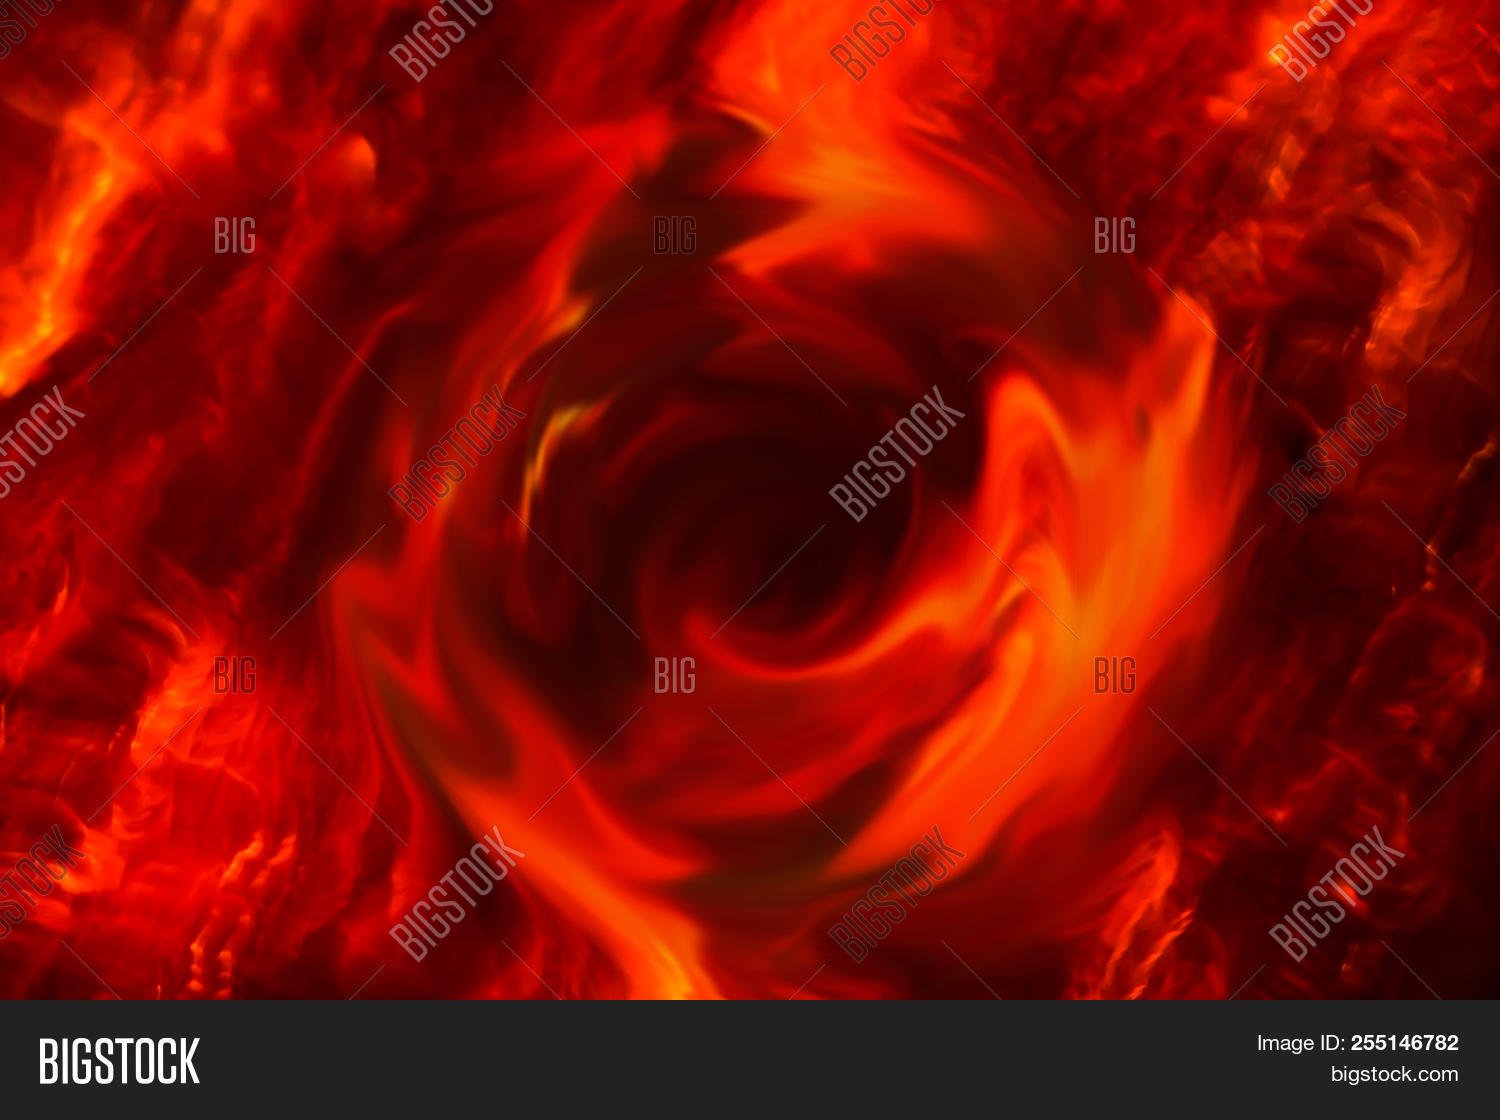 Fire Embers Hell Image Photo Free Trial Bigstock